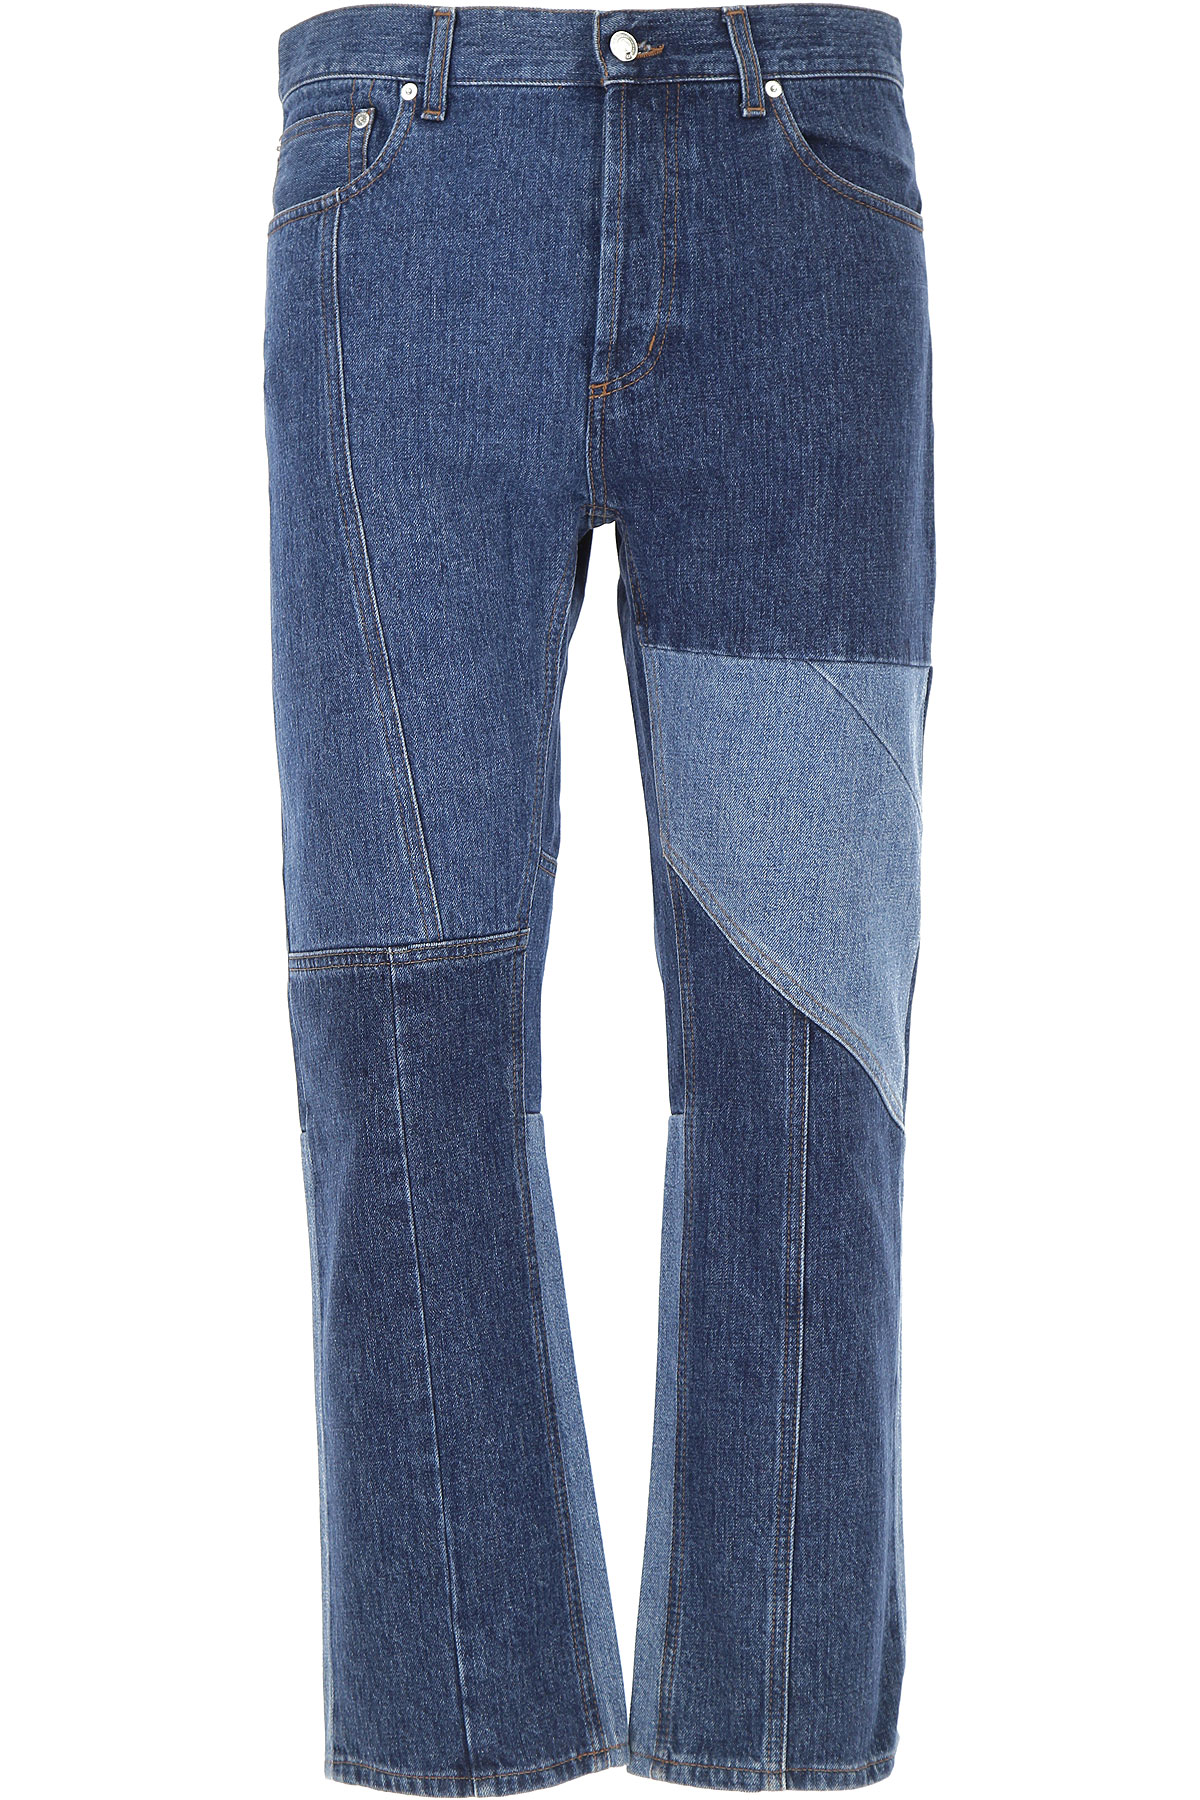 Image of Alexander McQueen Jeans On Sale in Outlet, Blue Denim, Cotton, 2017, 30 32 34 36